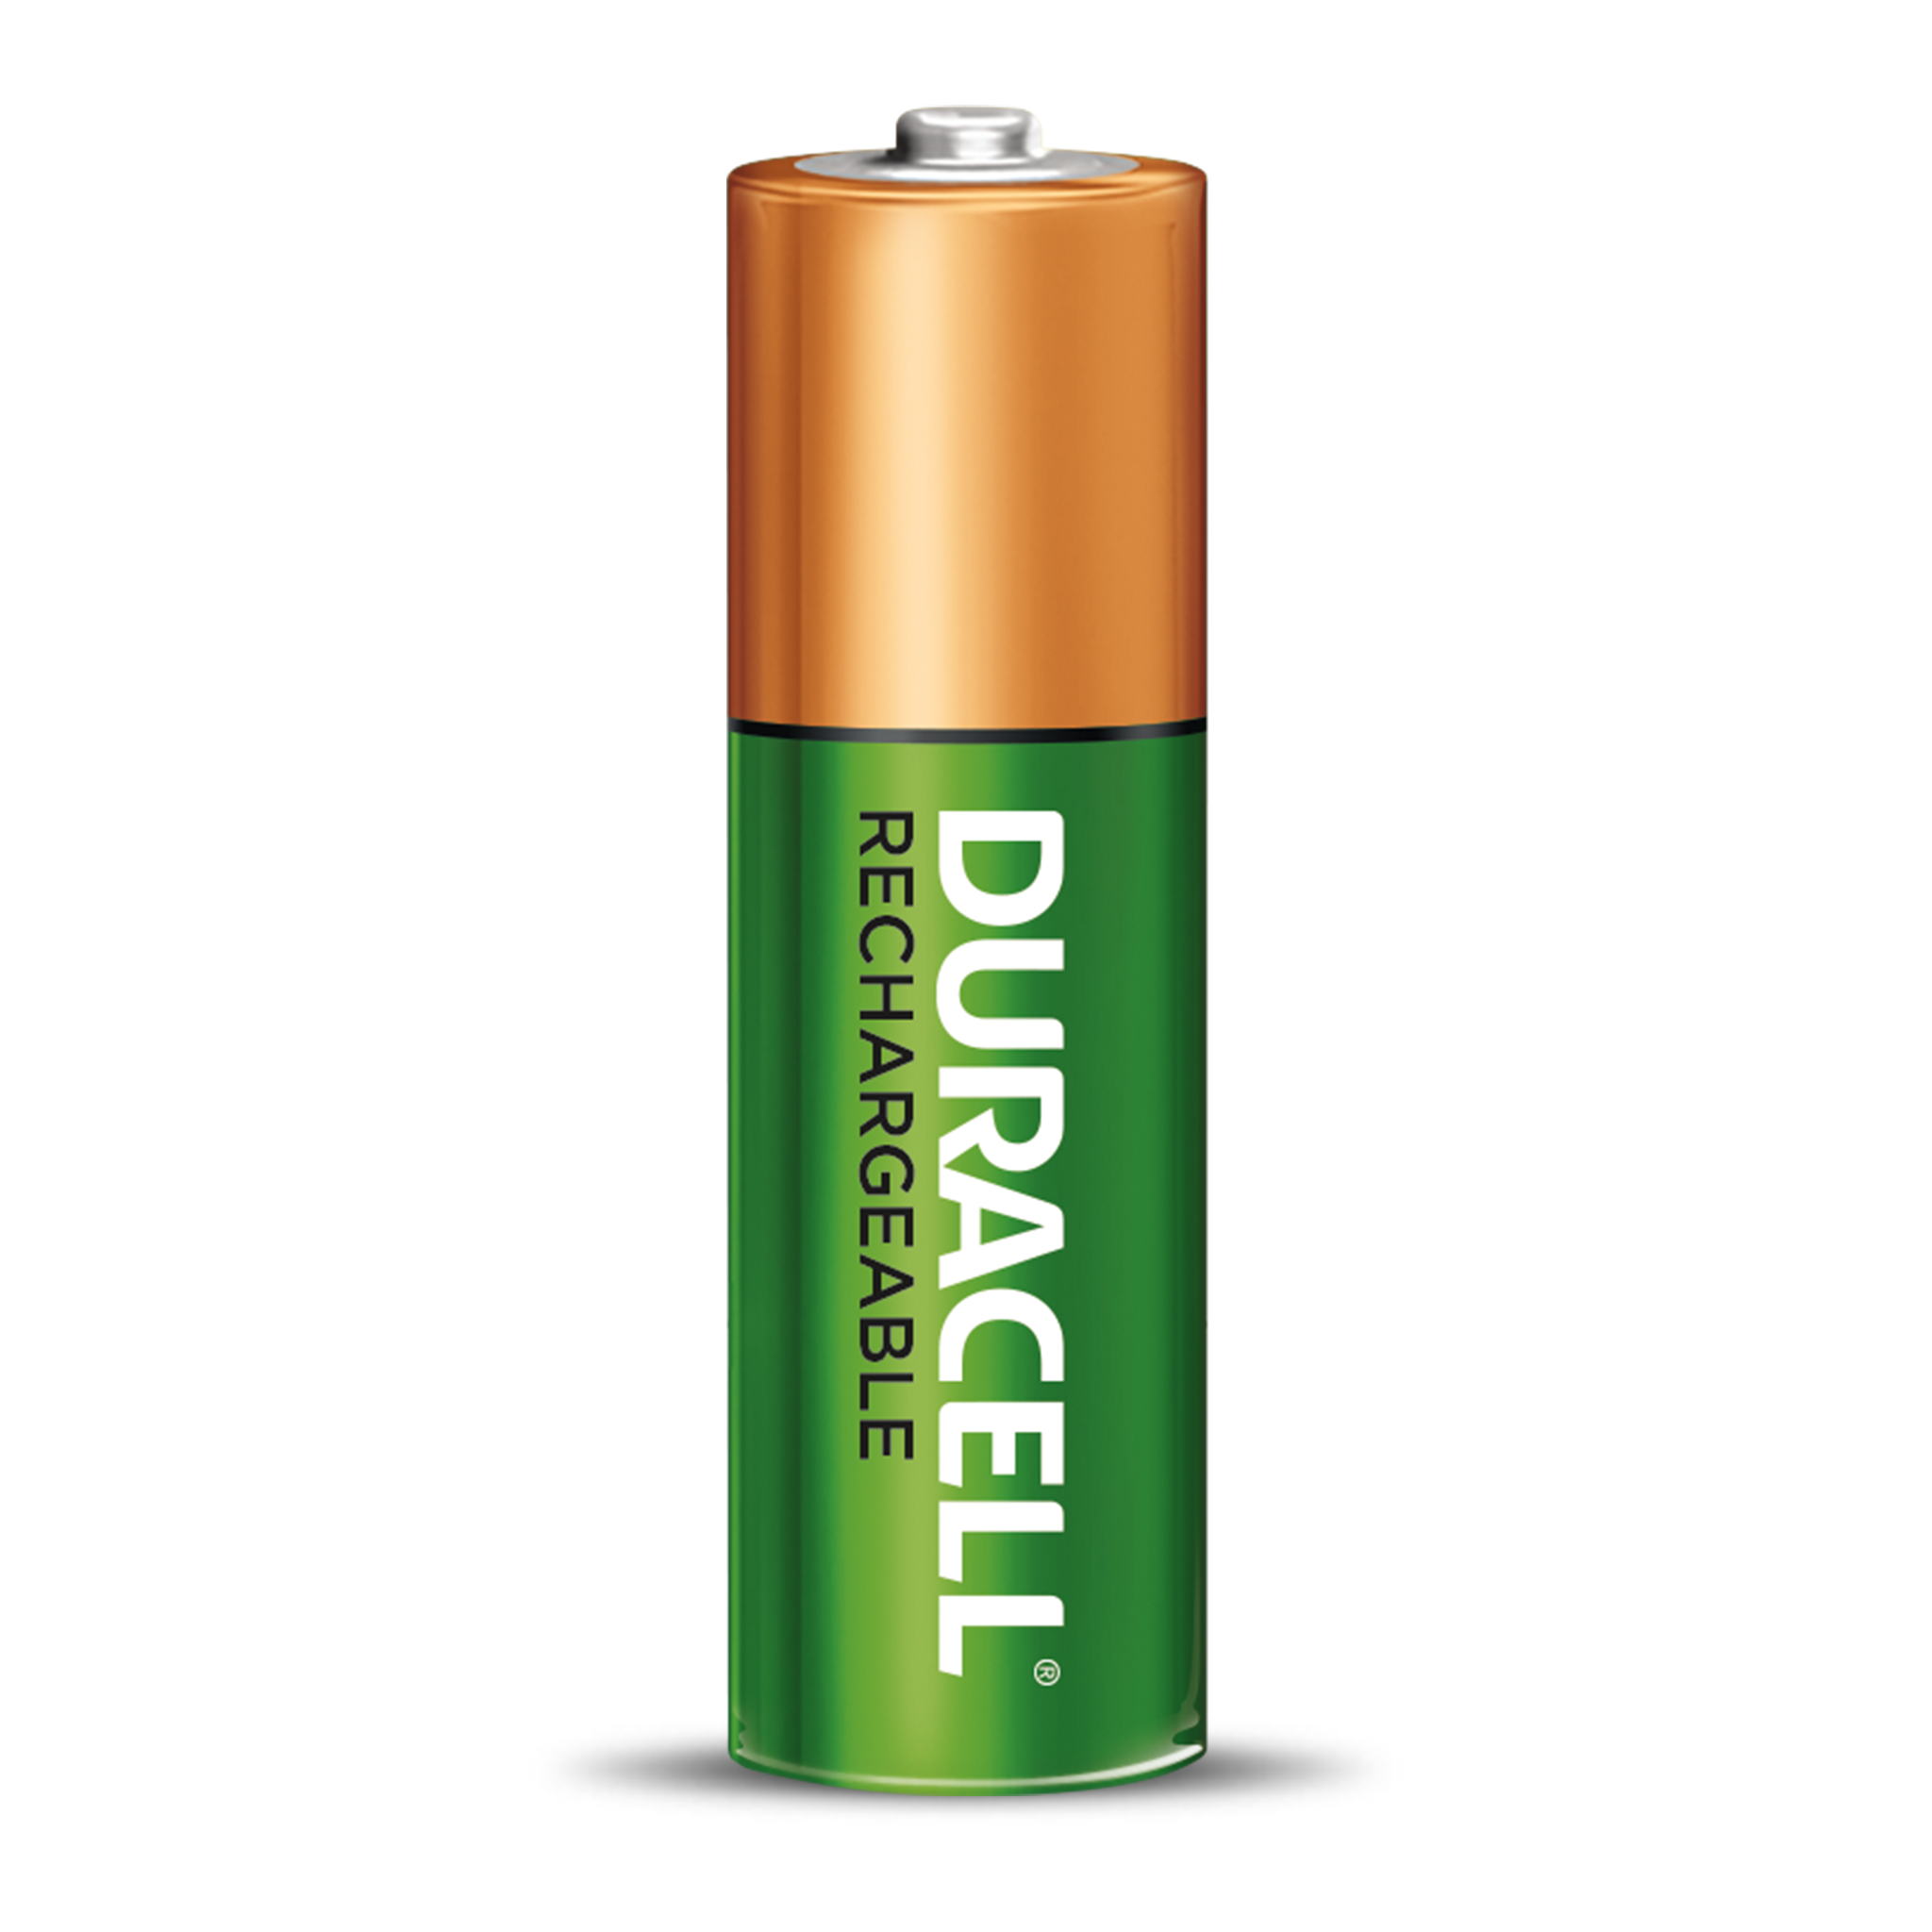 Standalone green and copper AA rechargeable battery